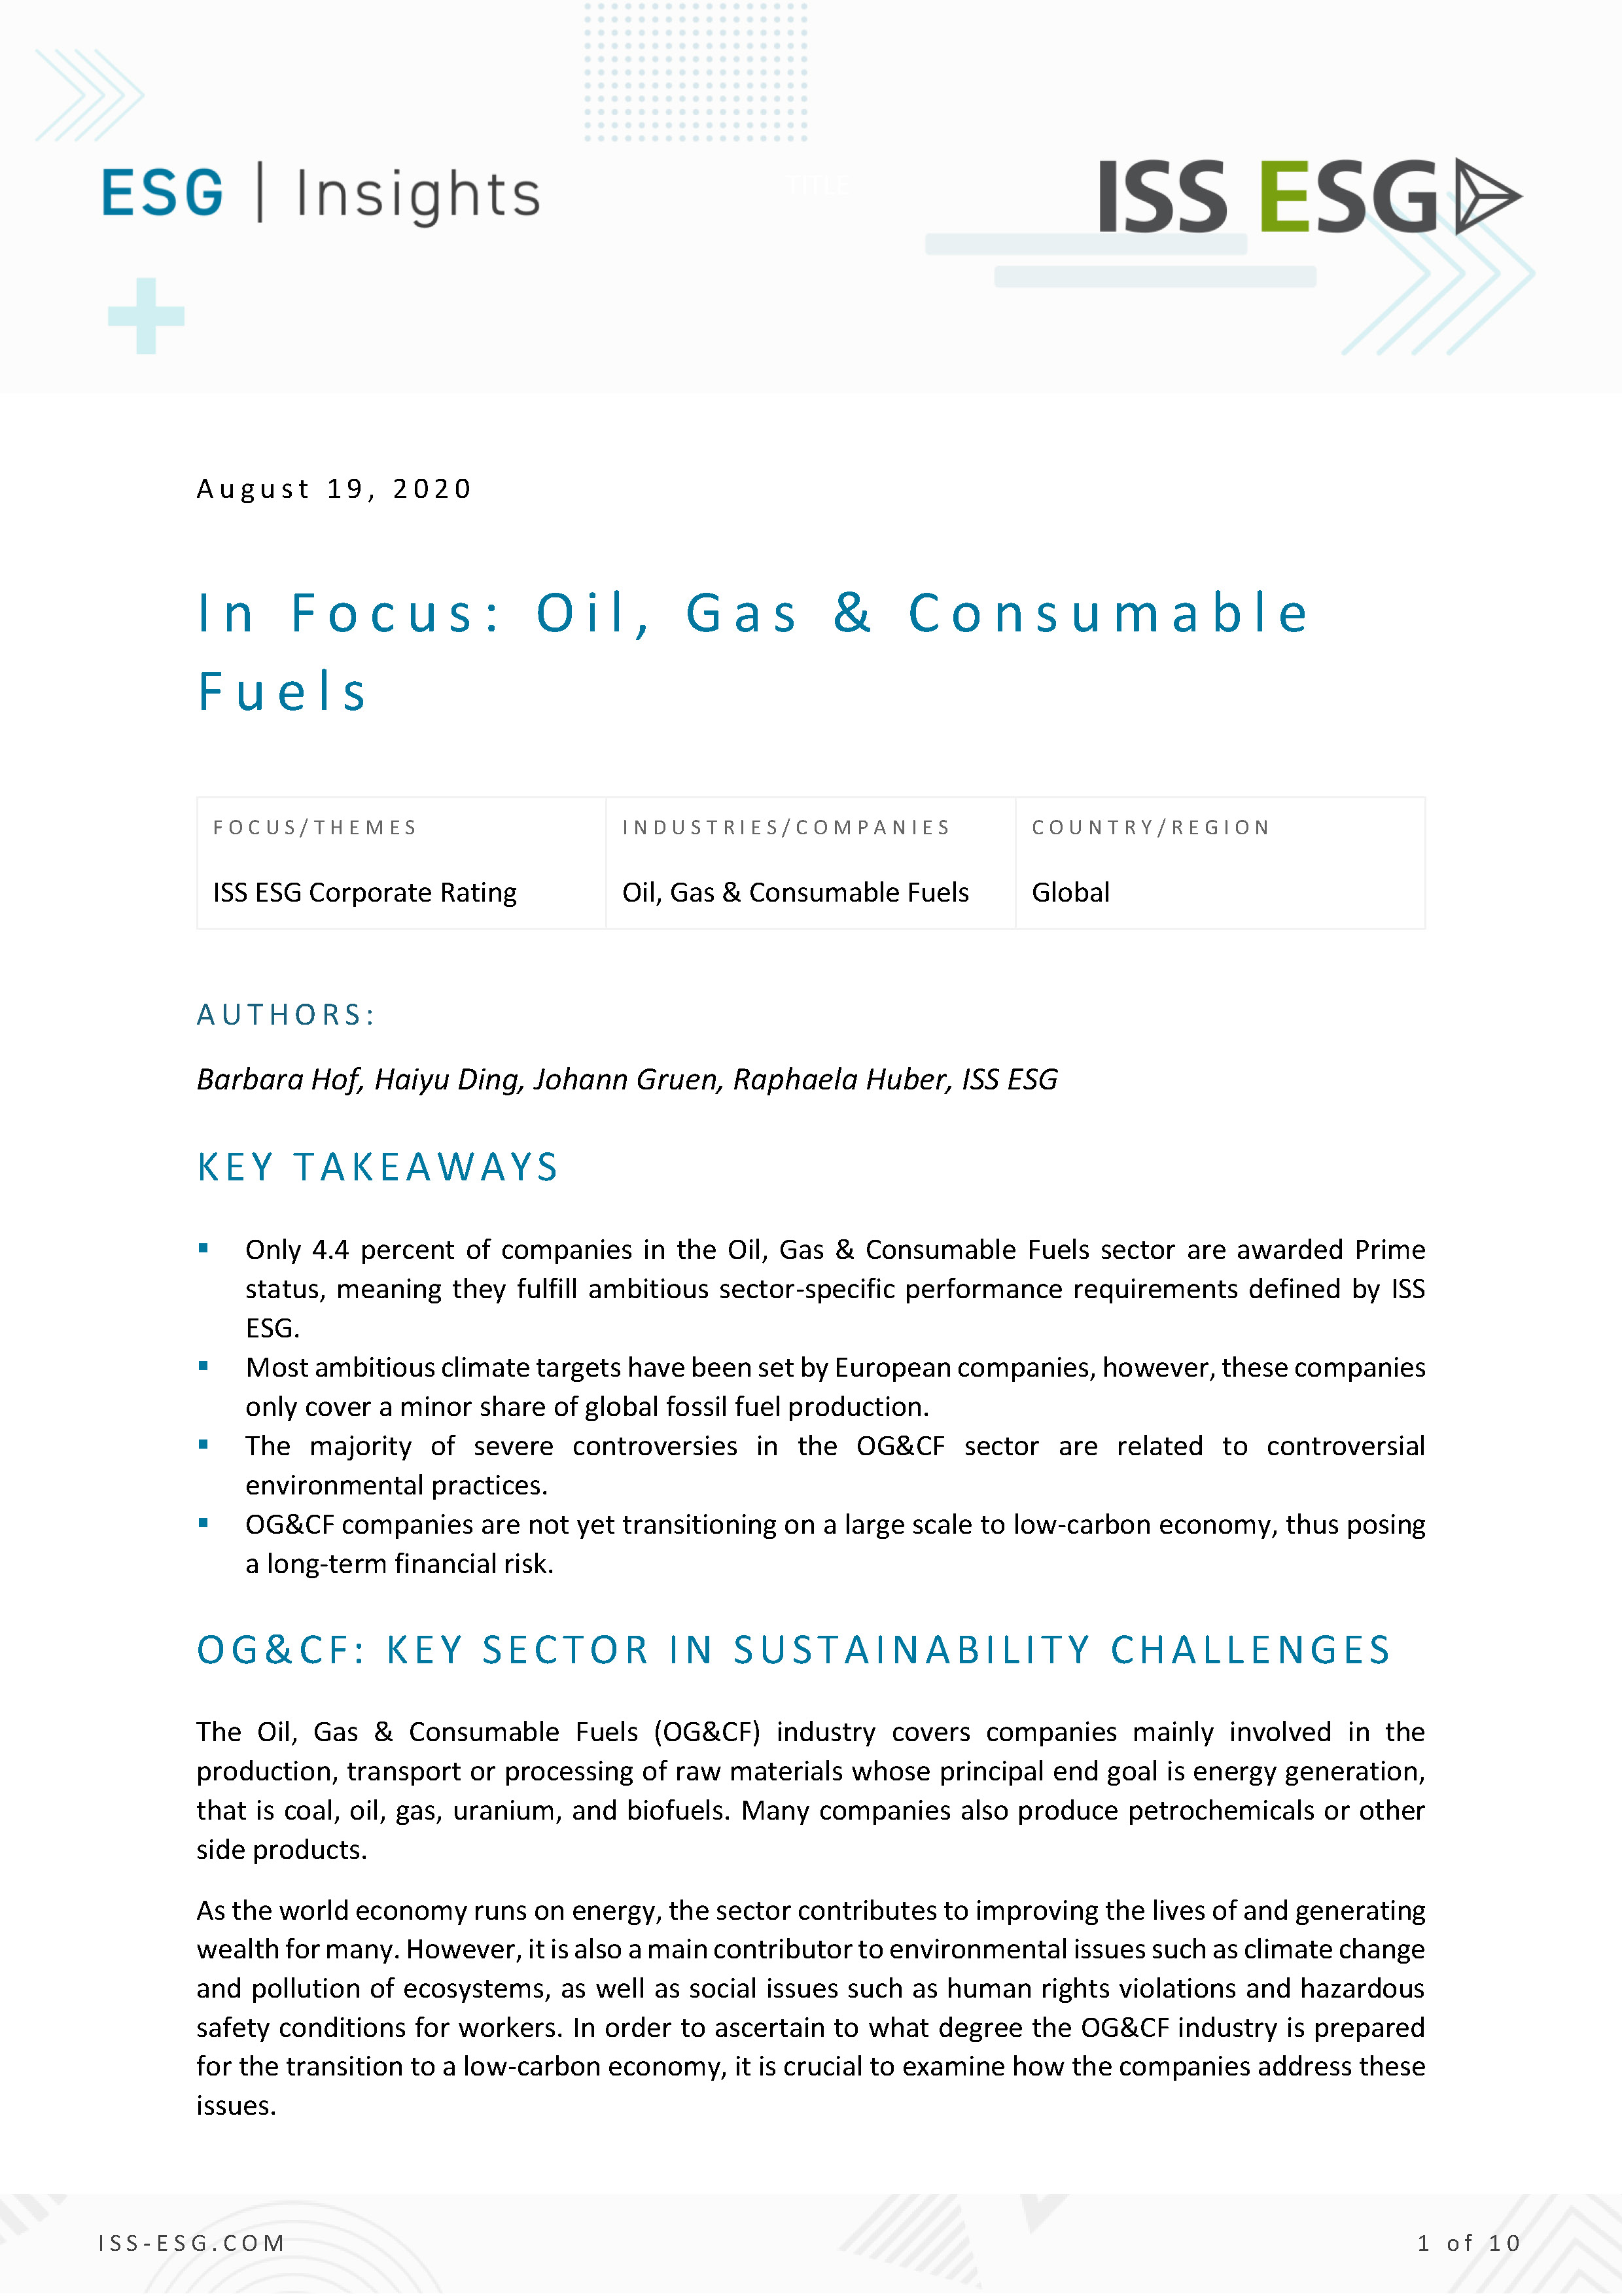 In Focus: Oil, Gas & Consumable Fuels